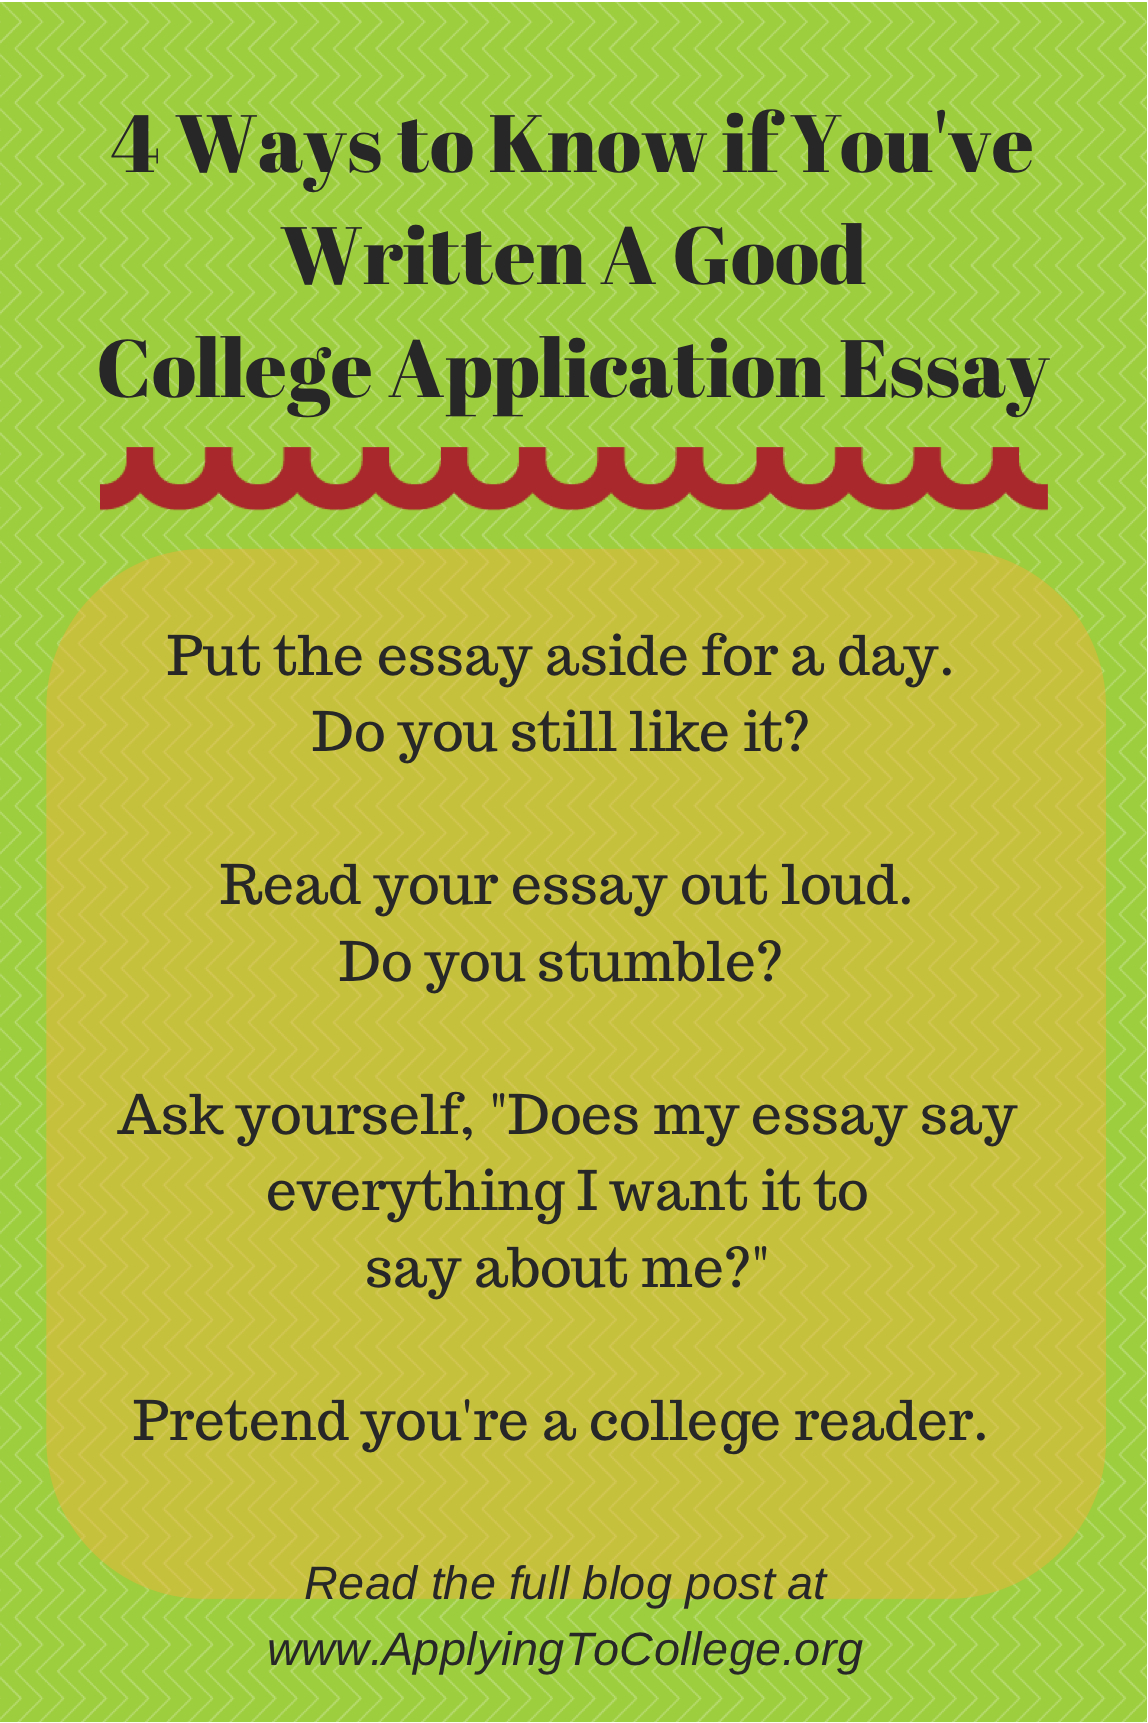 How to write good college essays